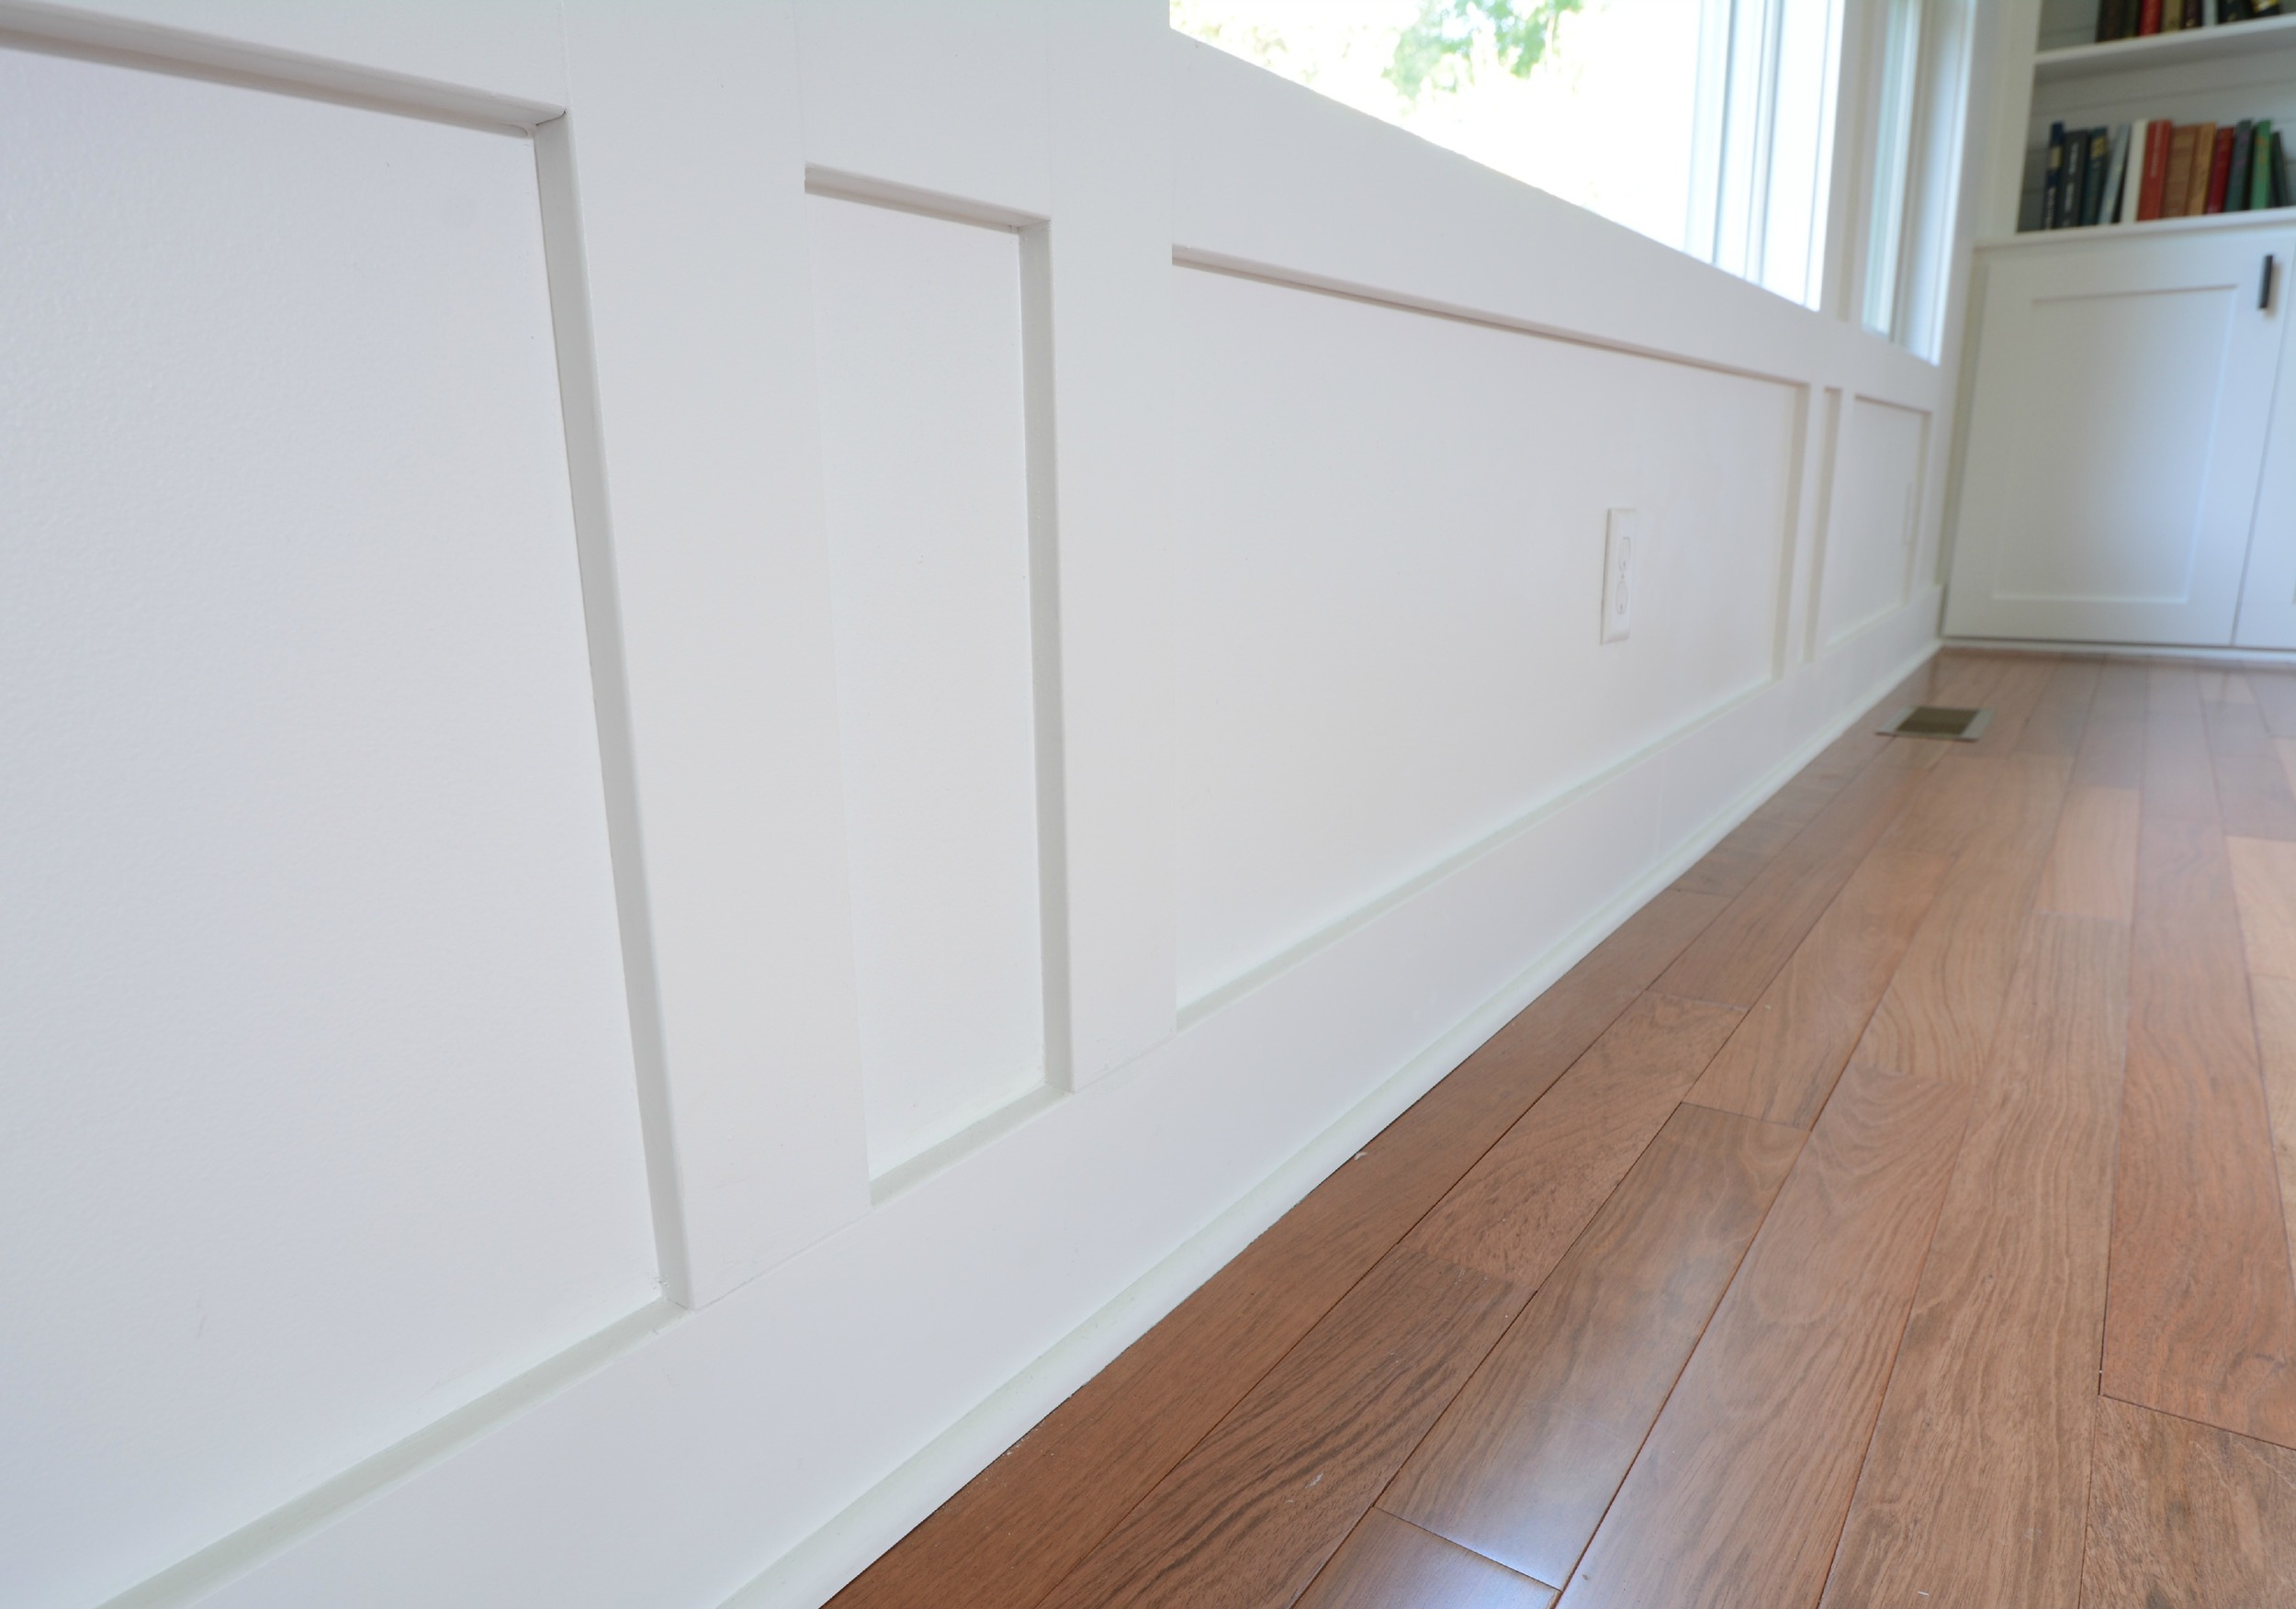 Adding Molding to a Wall